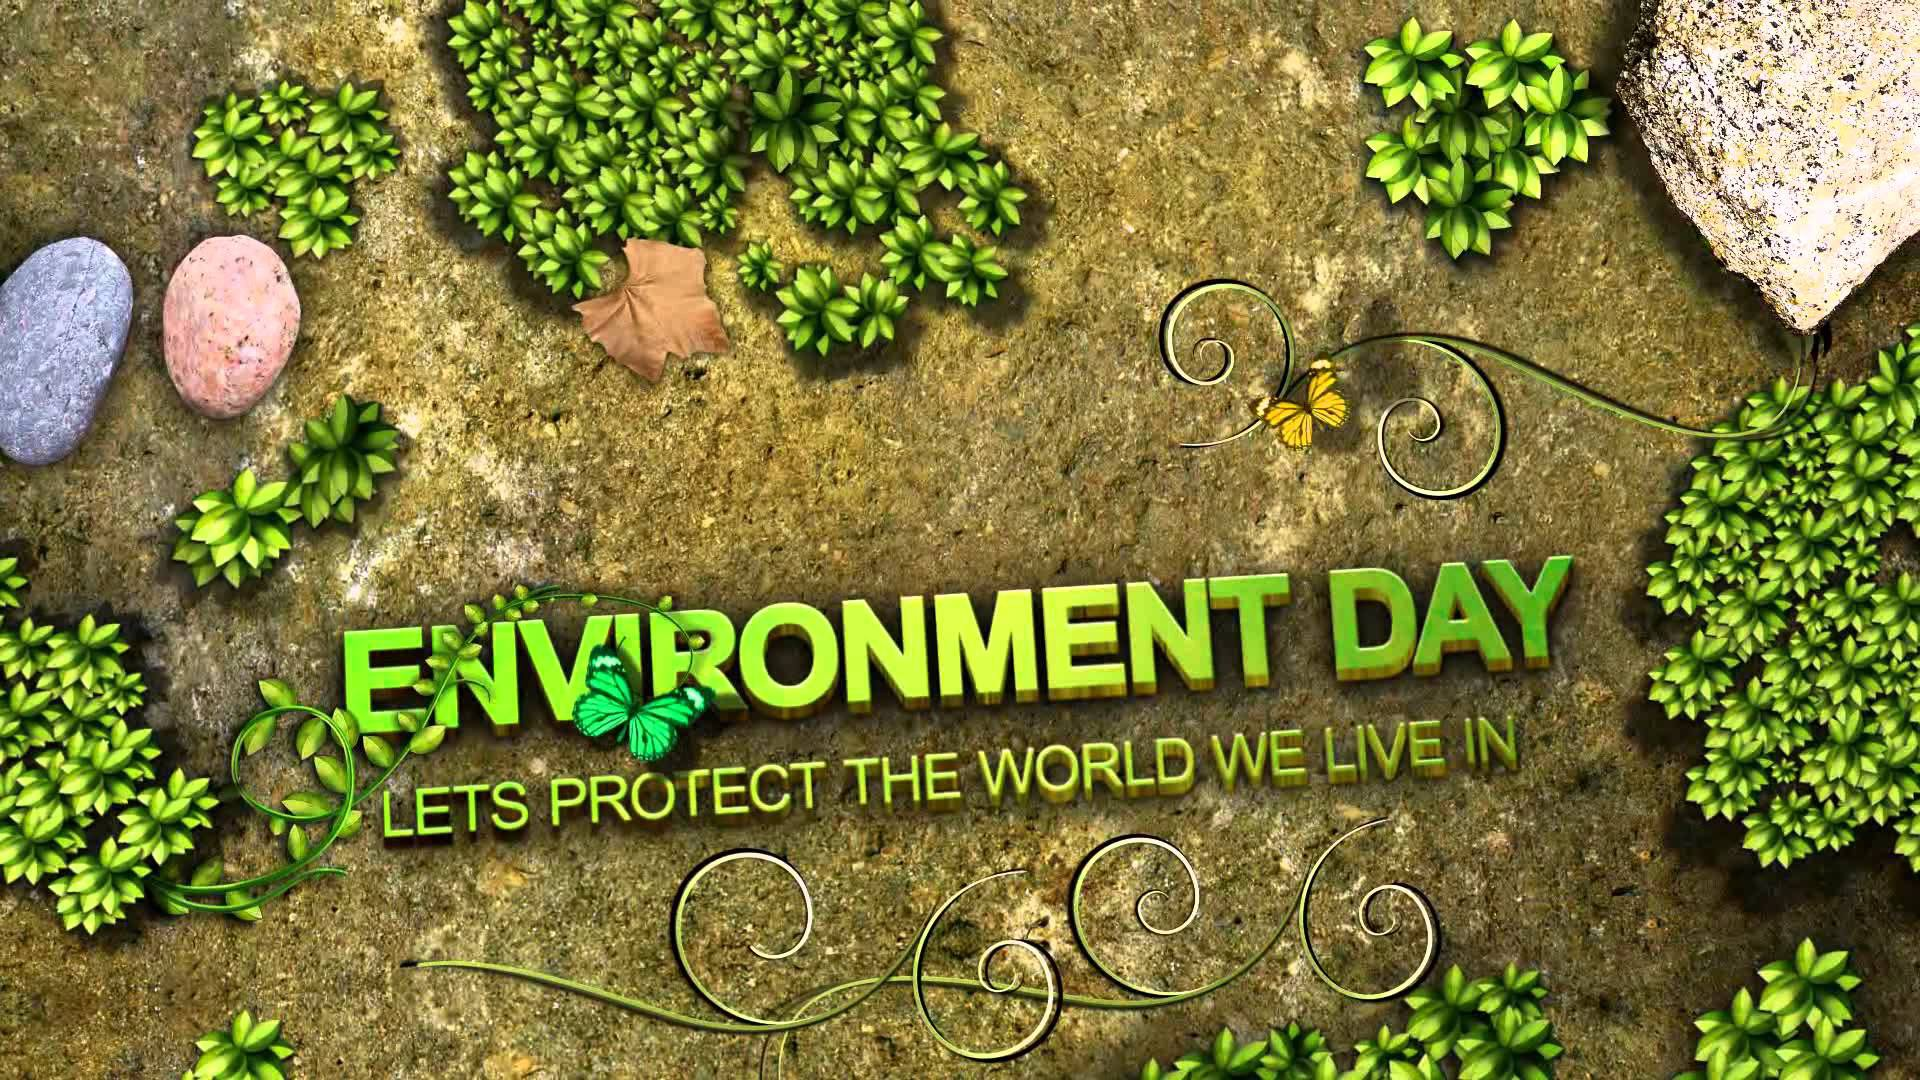 World Environment Day Images Wallpapers Amp Photos For